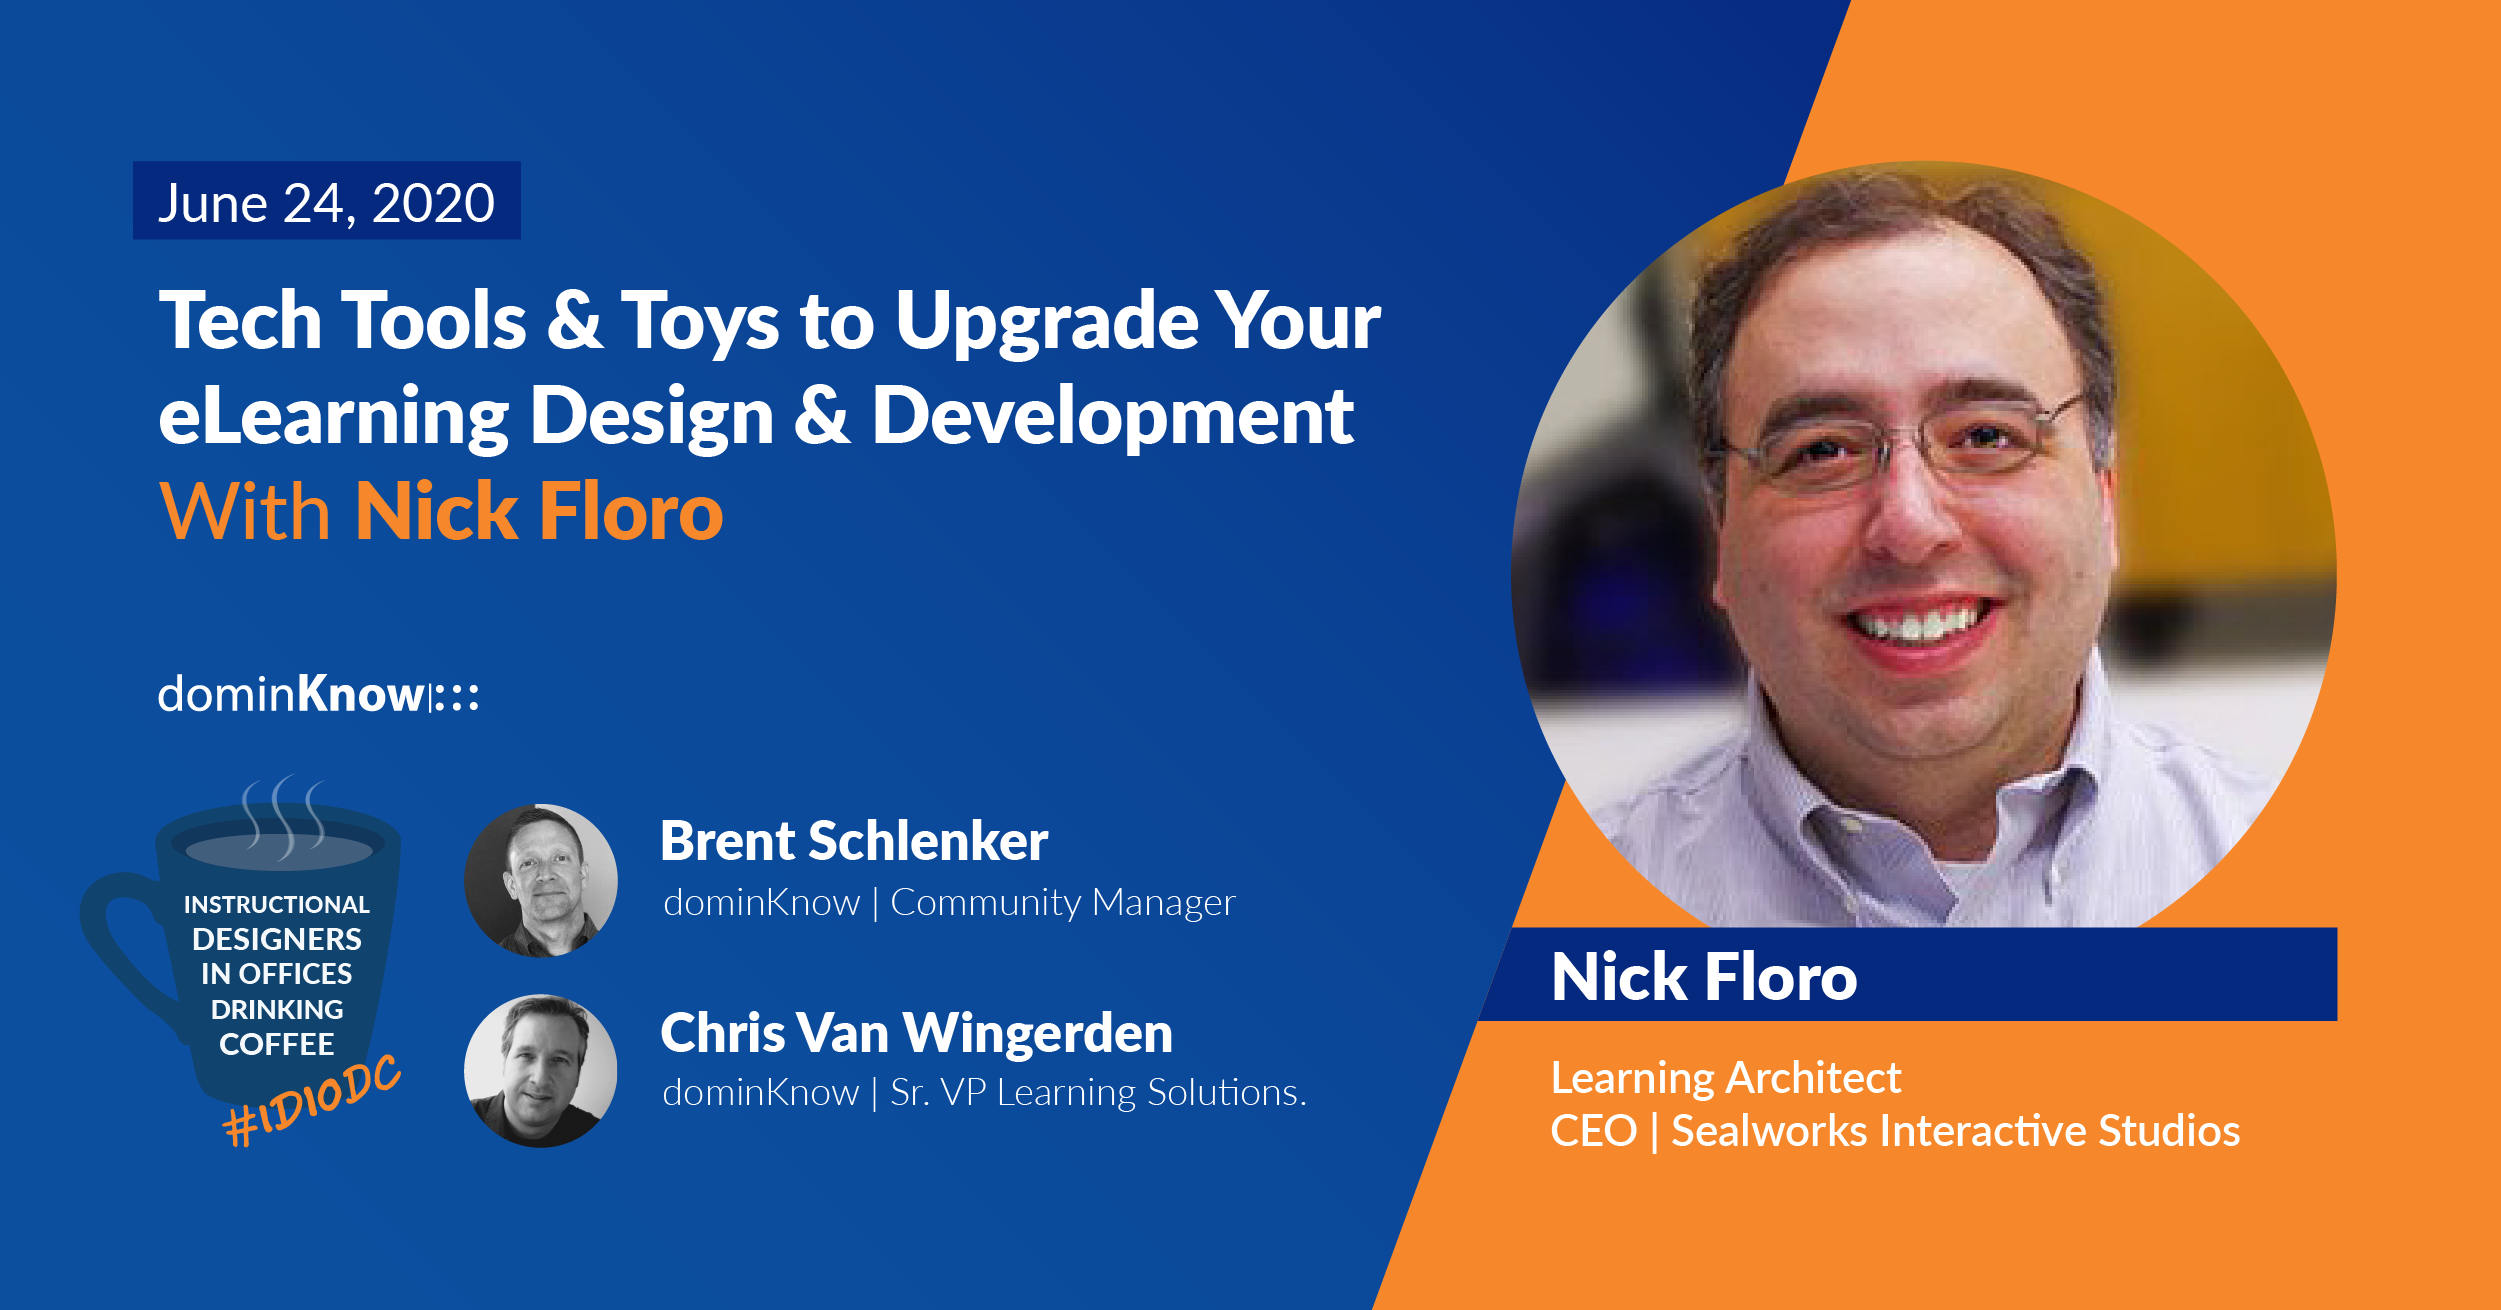 Tech Tools & Toys to Upgrade Your eLearning Design & Development With Nick Floro